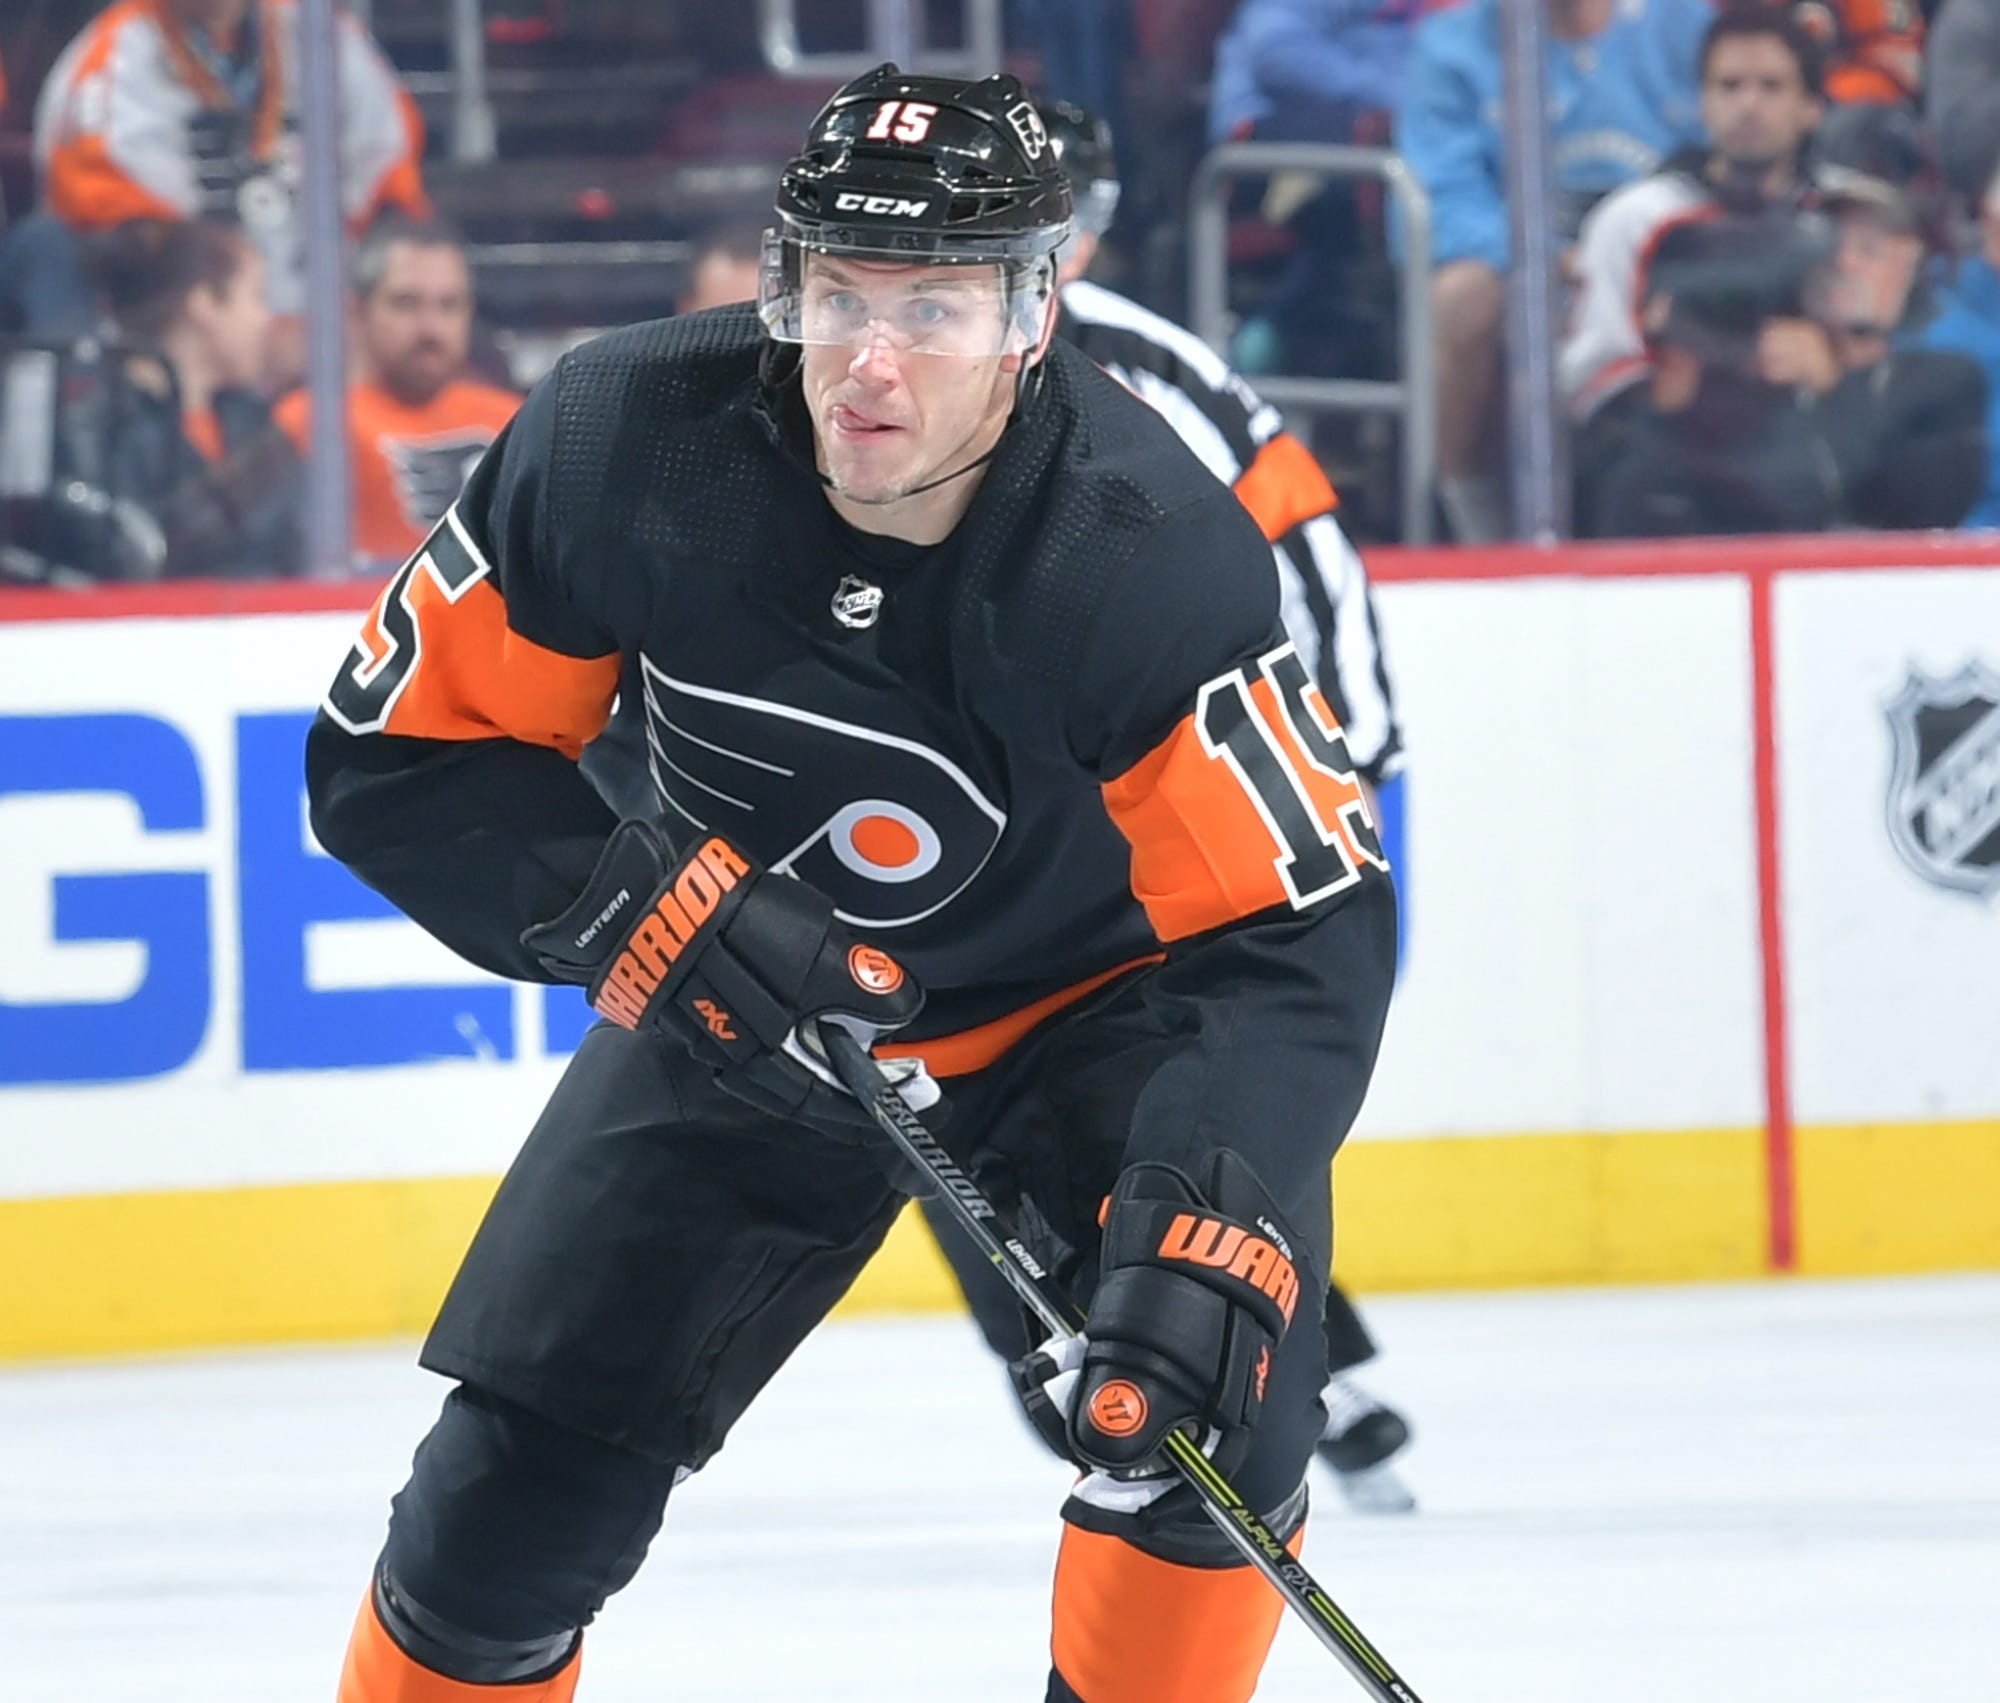 Jori Lehterä has played in 24 games this season, but has been a healthy scratch since Dave Hakstol was fired.